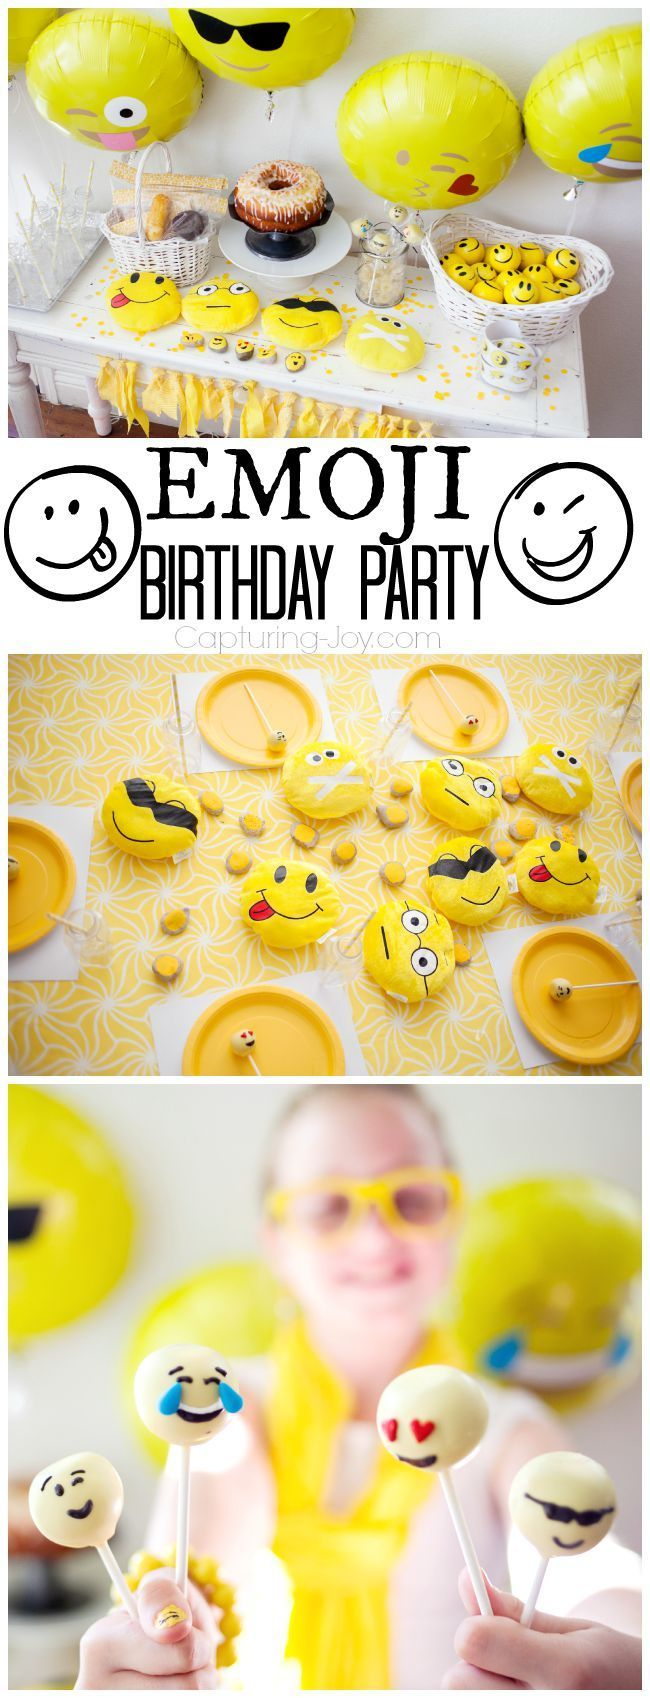 Emoji Birthday Party With Happy Face Emoticons Fun Theme And Ideas Ww